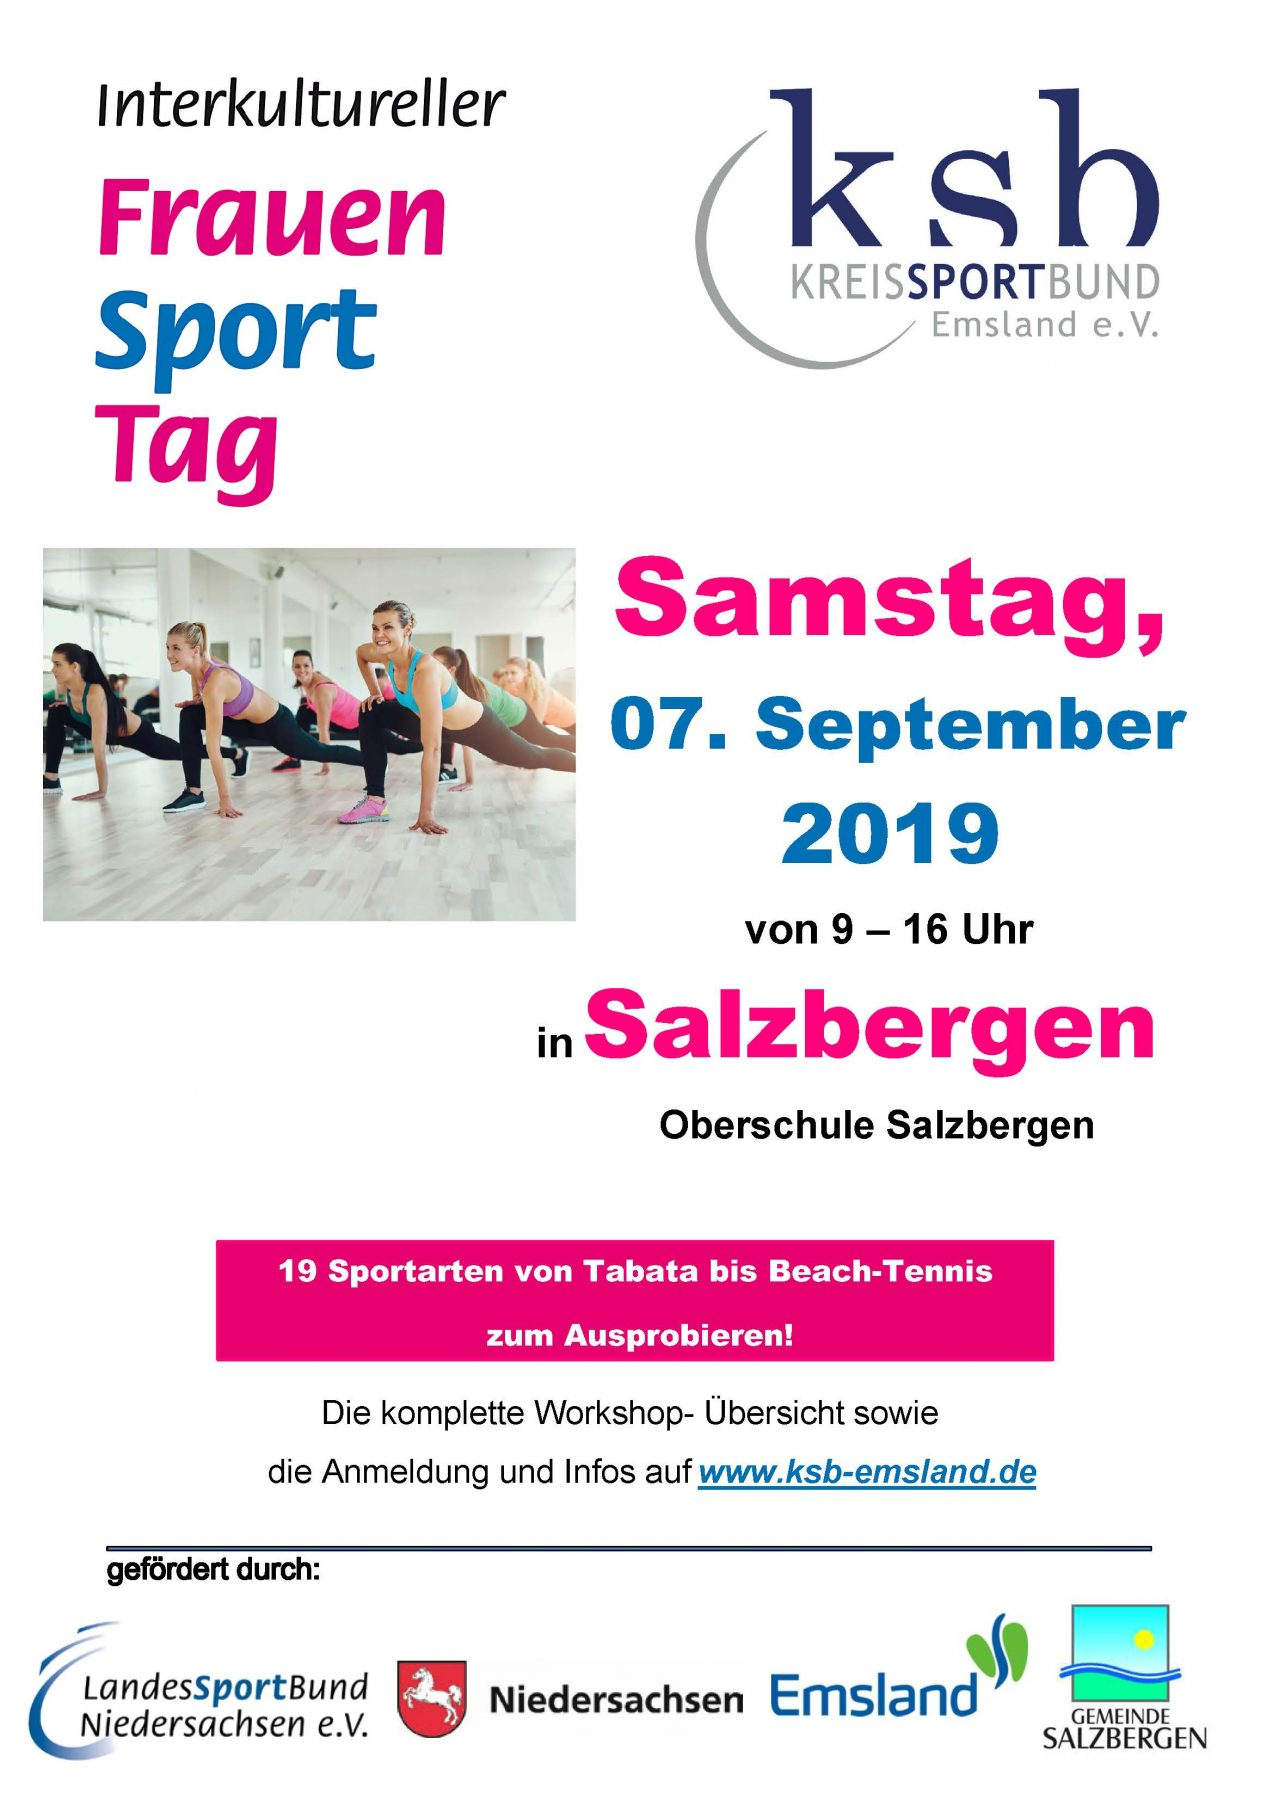 Frauensporttag am 07. September